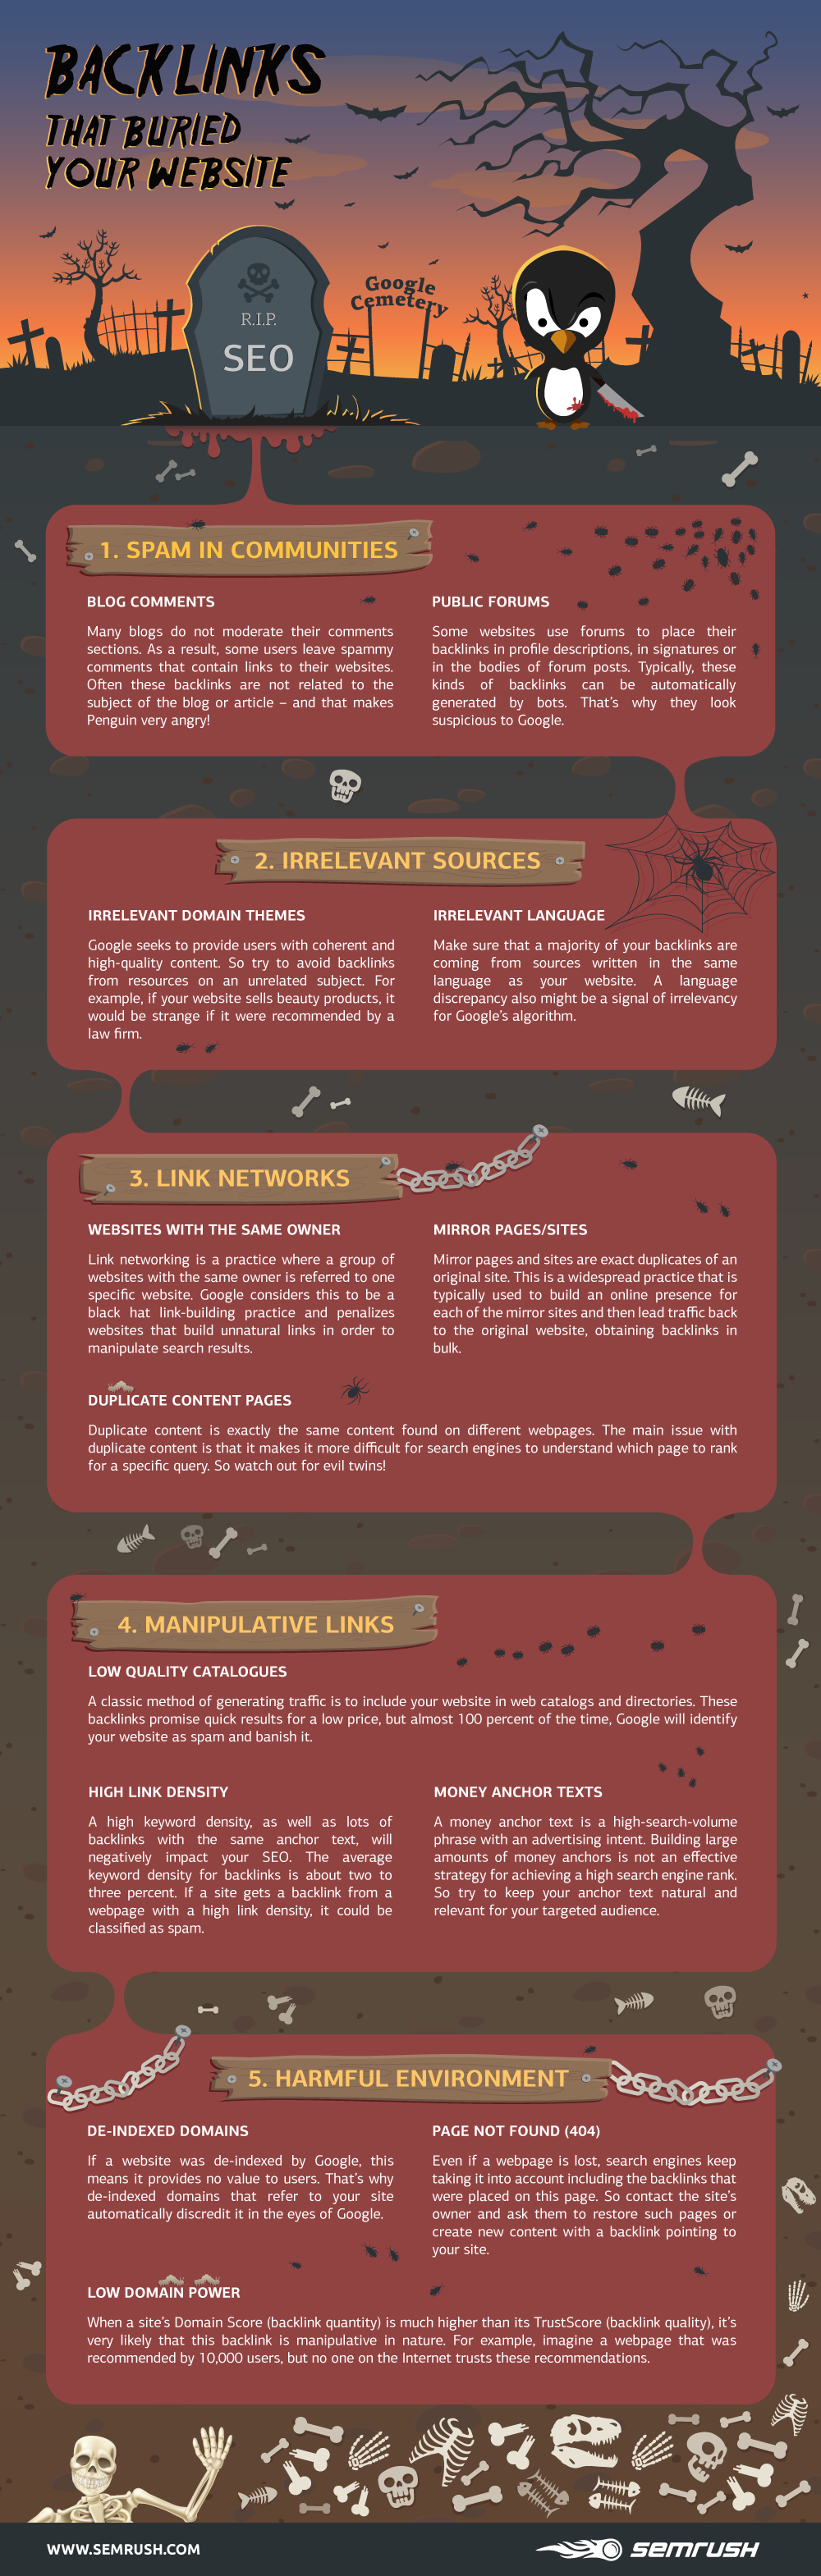 Backlinks that buried your website